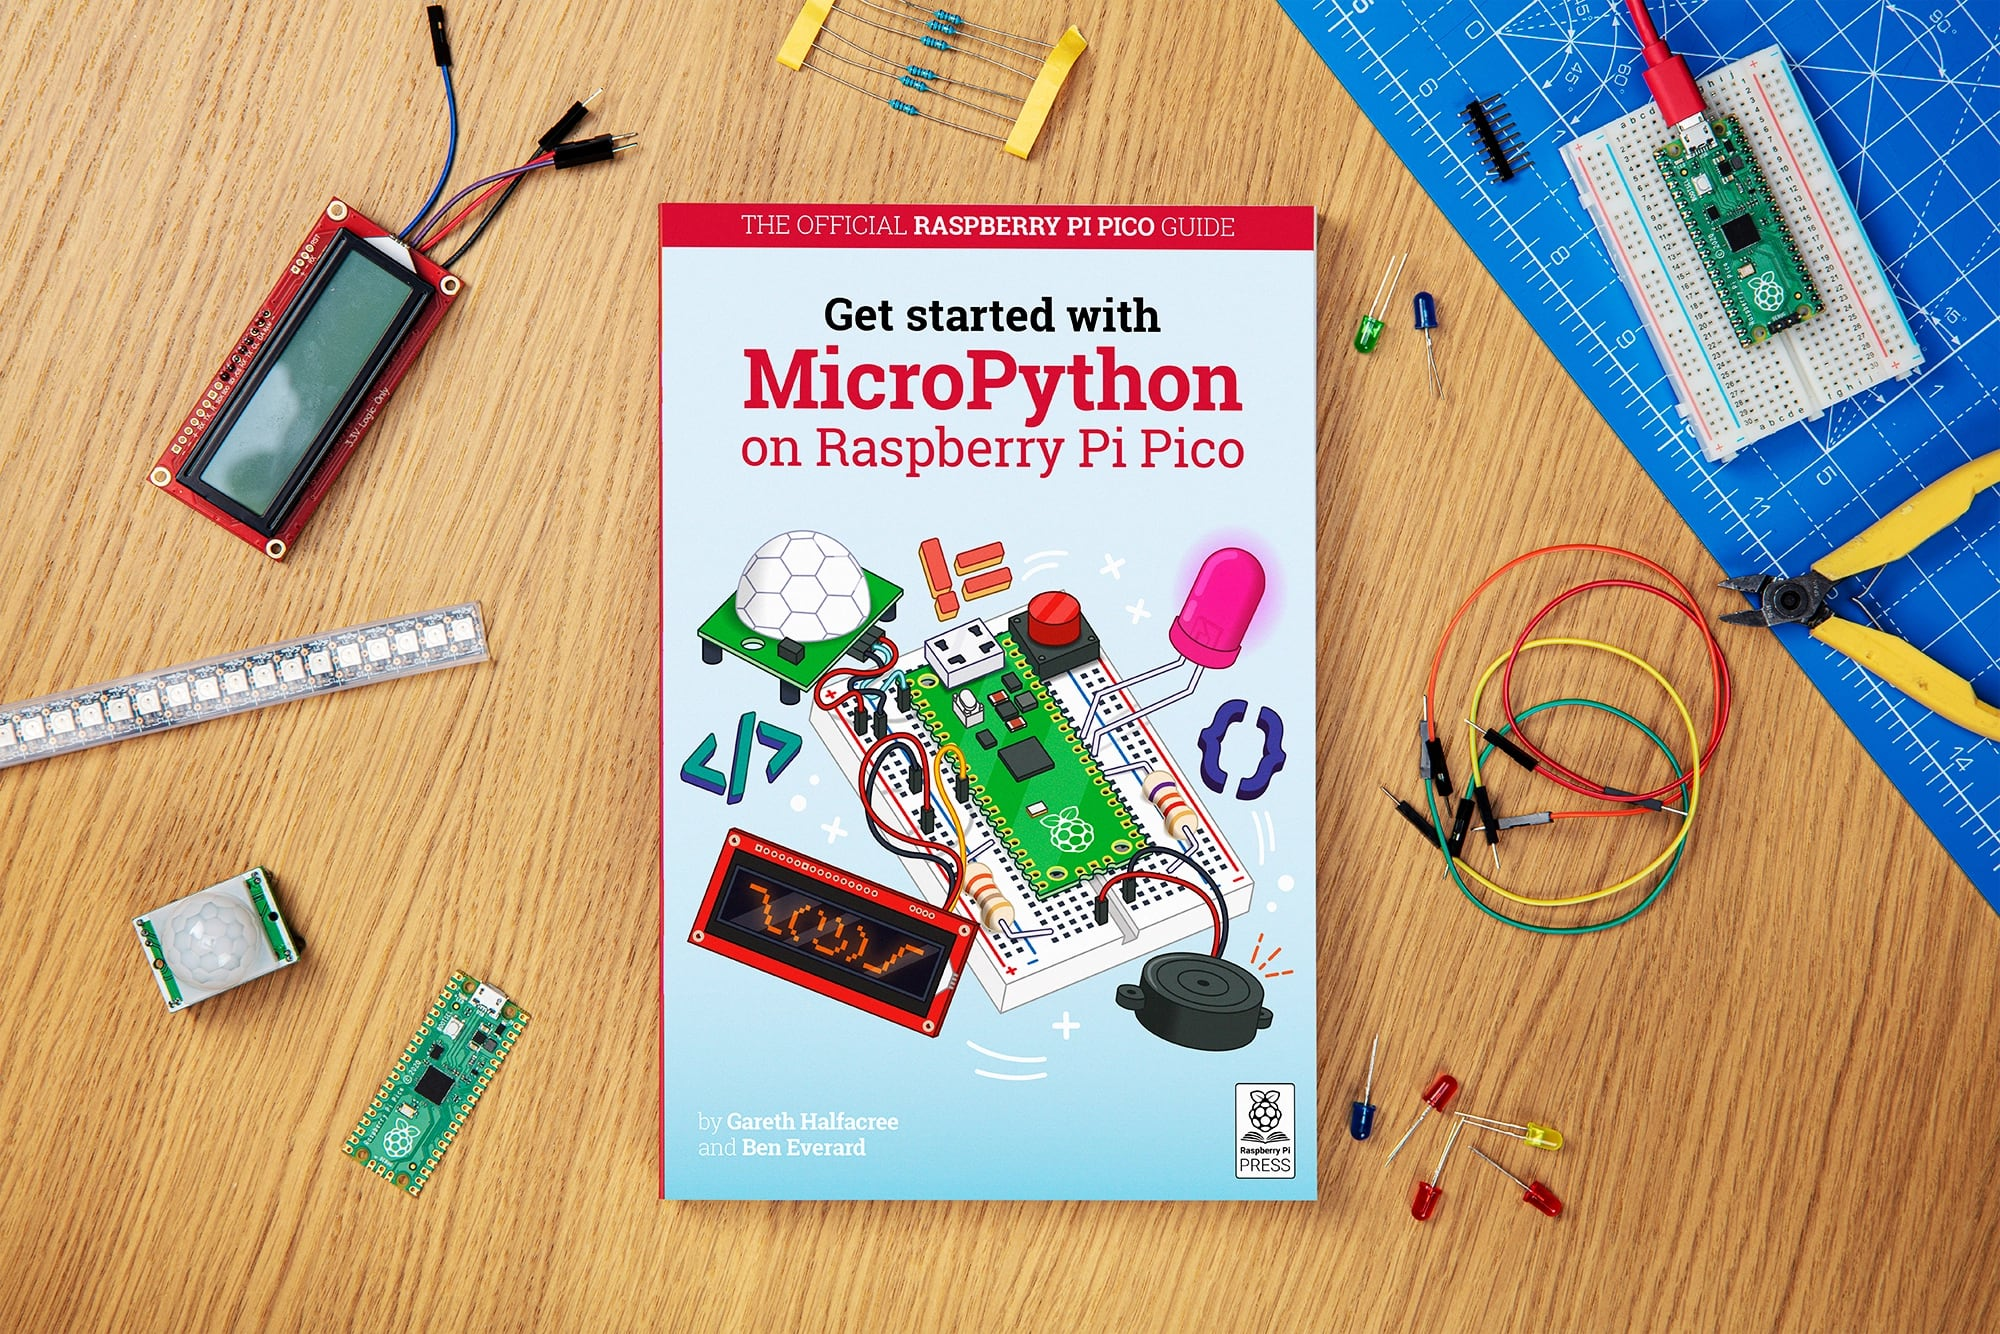 Raspberry Pi Foundation launches $4 microcontroller with custom chip – TechCrunch